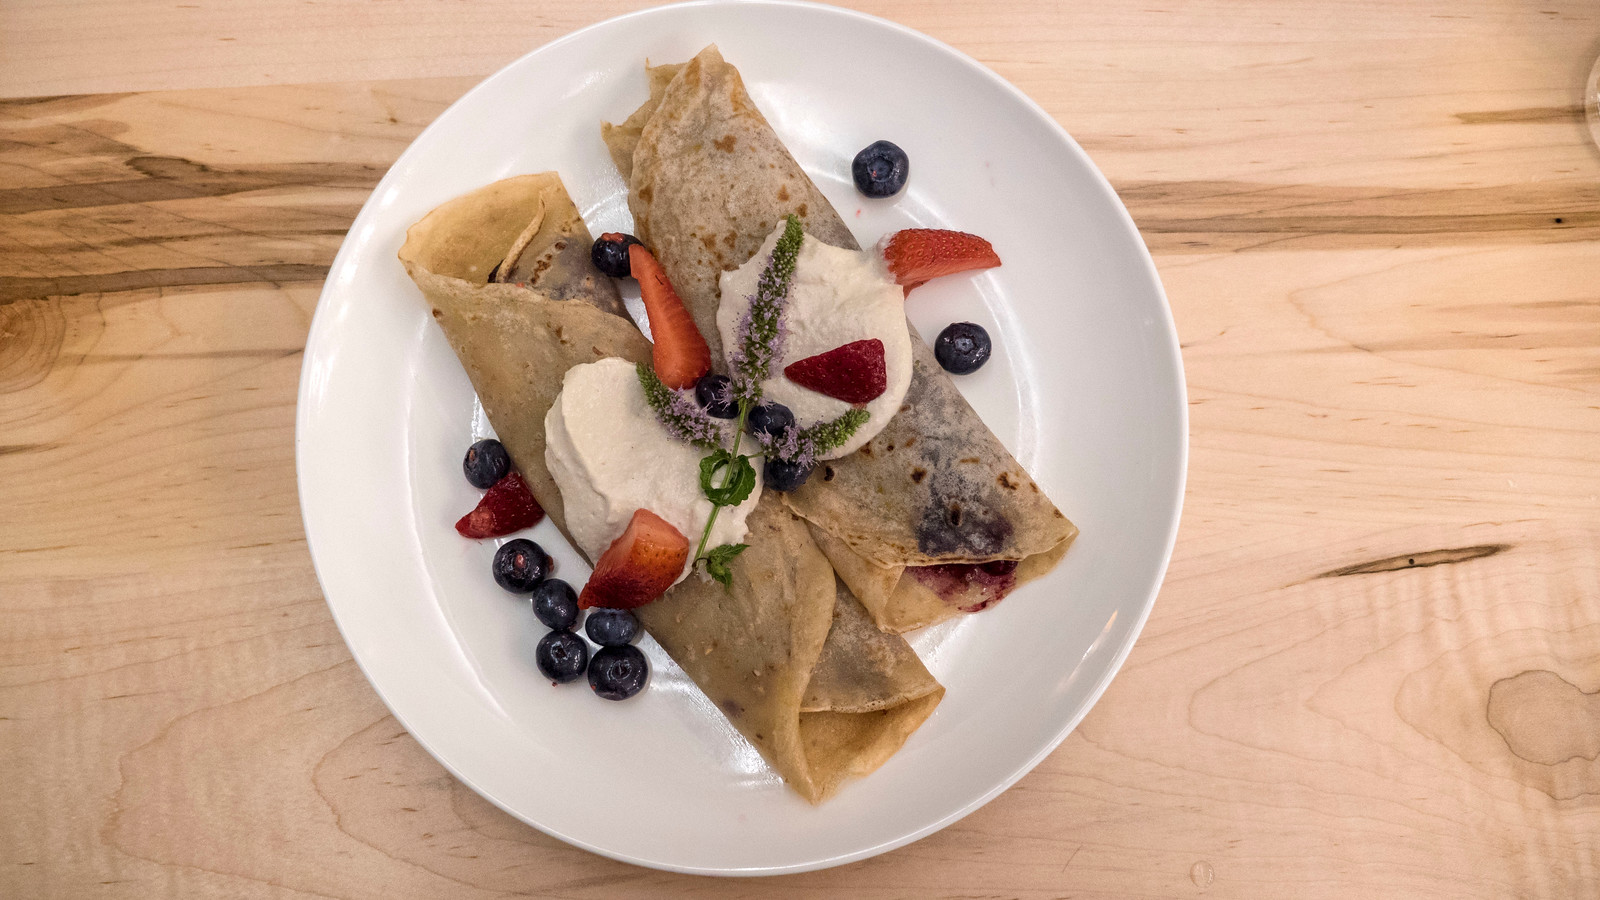 Tasty and beautiful vegan crepe at Barrel Bistro. Grand Bend Vegan and Vegetarian Restaurant Guide.